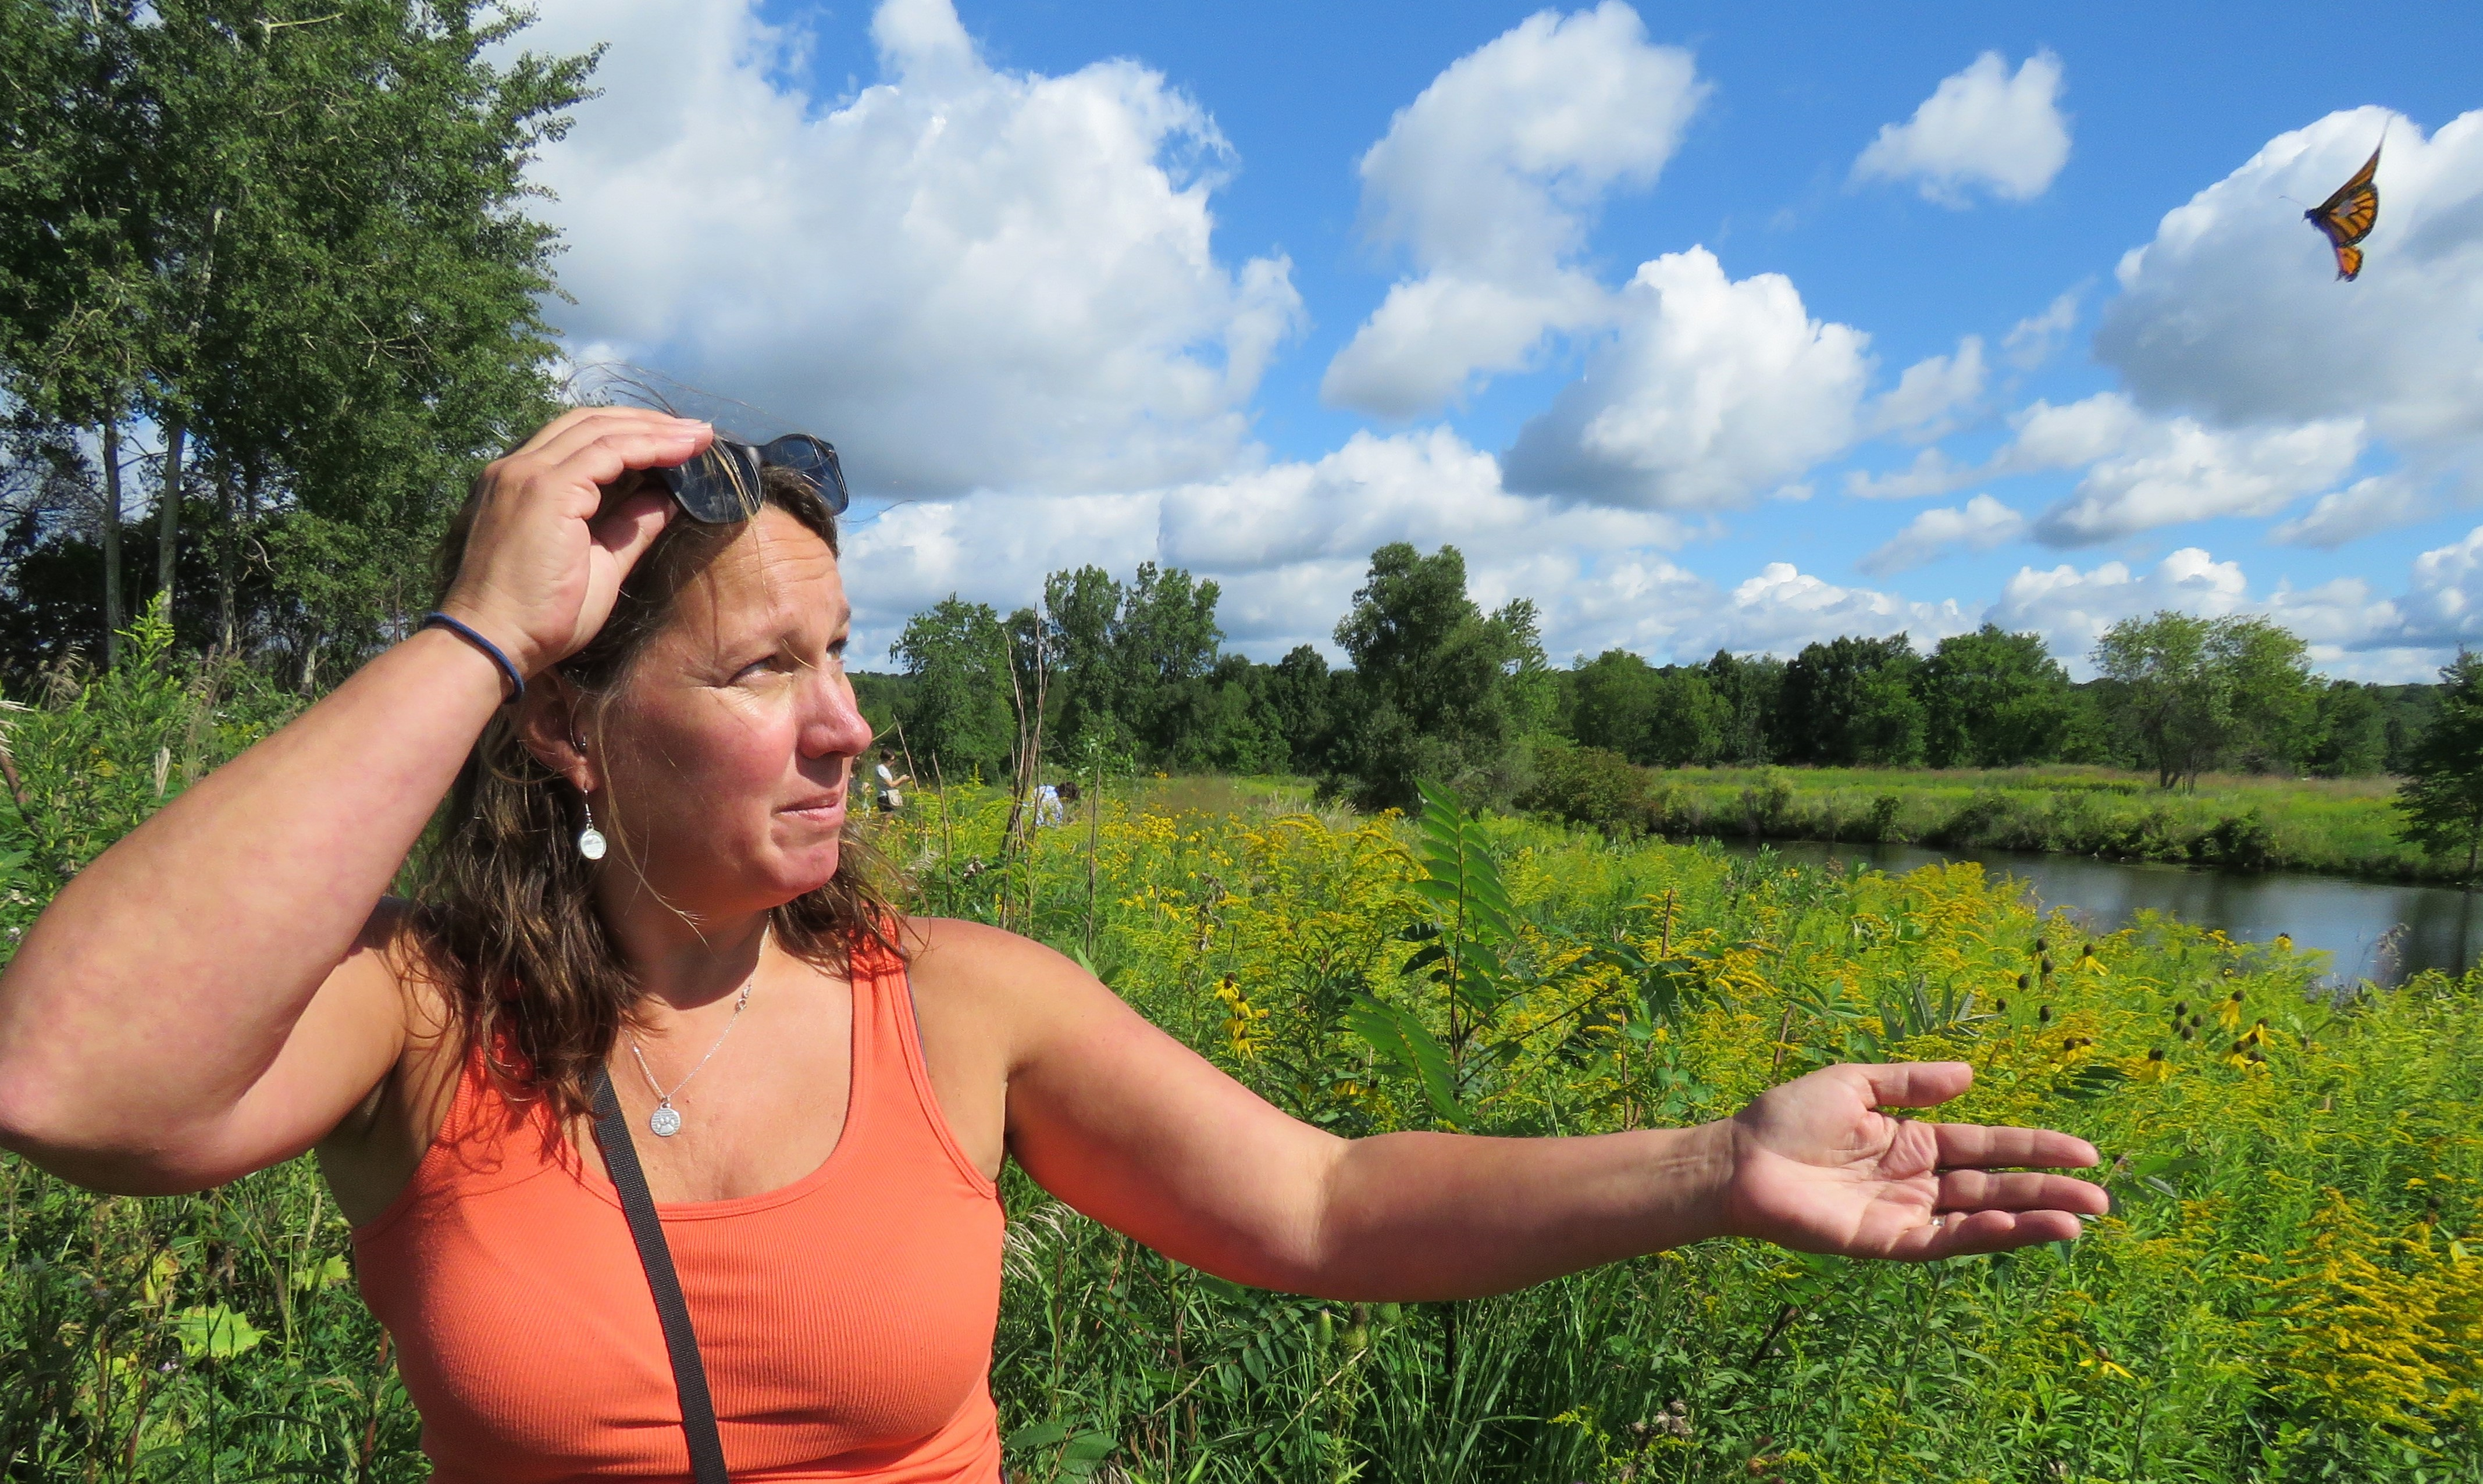 A woman releases a monarch in a meadow on a sunny day